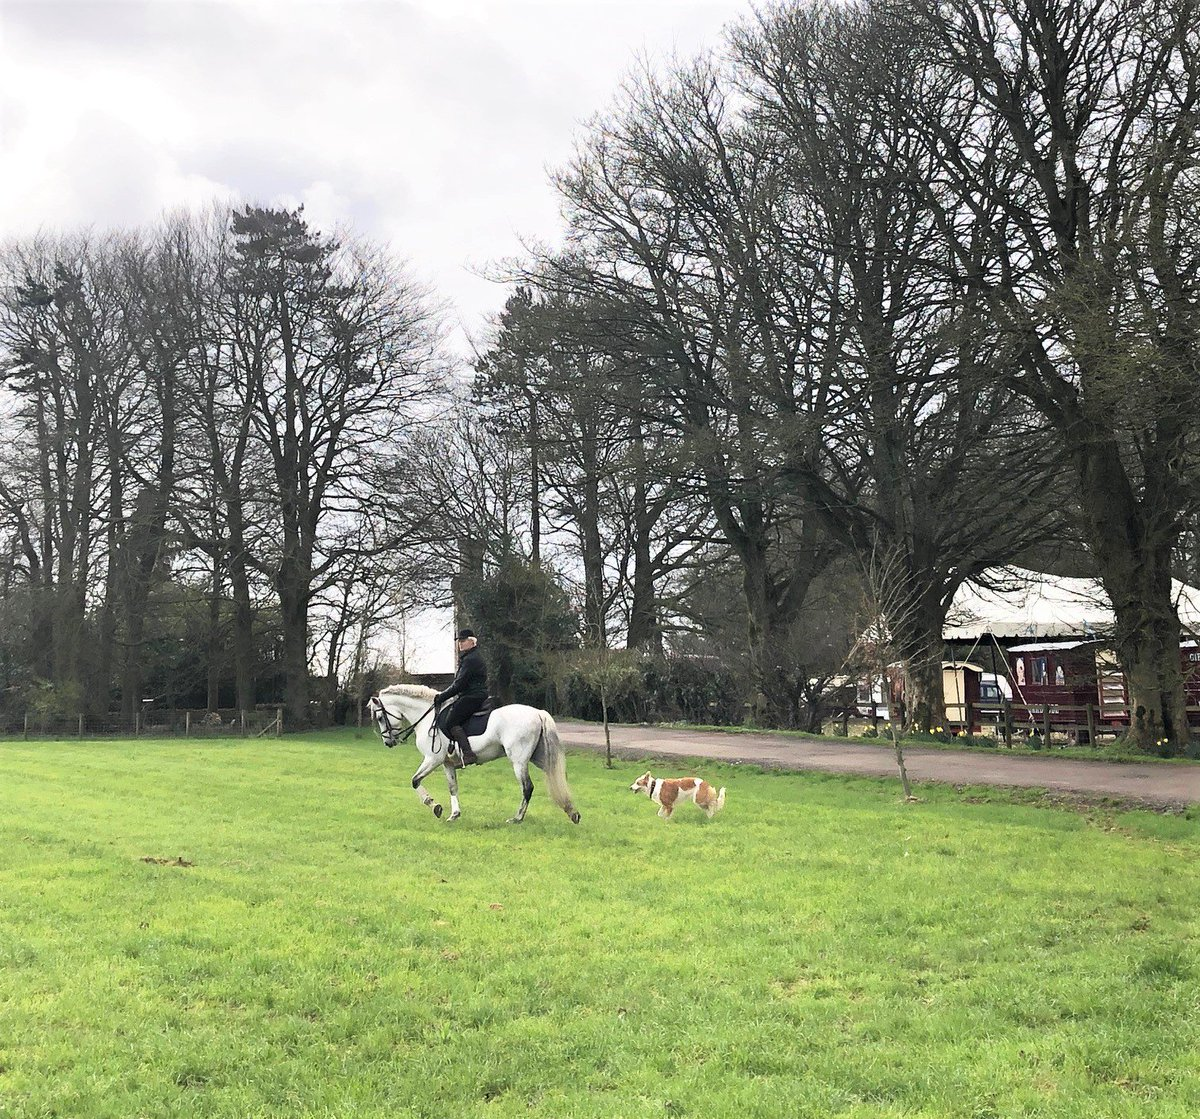 Nell riding beautiful stallion Diamond who has recently returned from his winter break. We think Nell looks just like the Giffords Circus logo with her dog Monkey following behind! #practiceeveryday #letsgetthisshowontheroad #giffordscircus<br>http://pic.twitter.com/5Y63OlSkl6